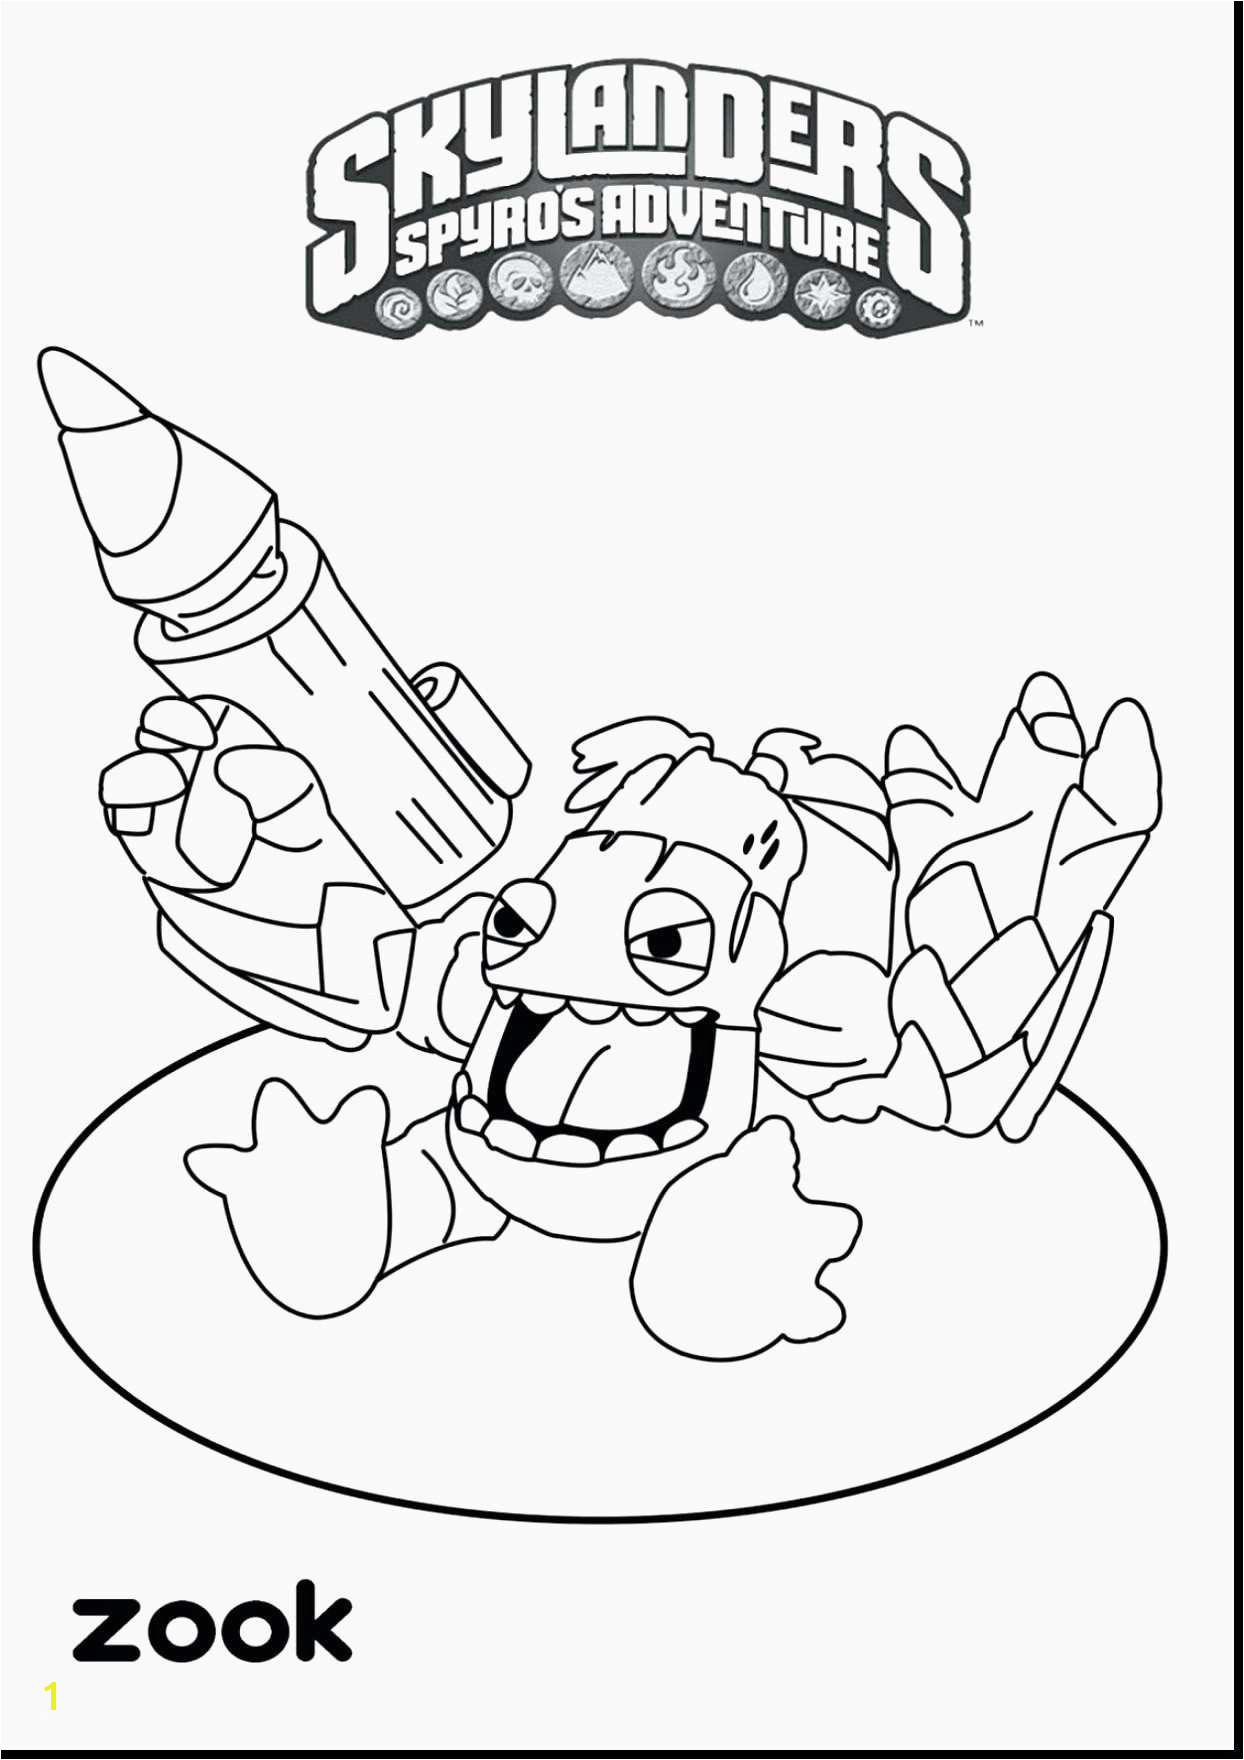 Nfl Football Coloring Pages Seahawks Coloring Pages New Piston Cup Coloring Page Coloring Pages